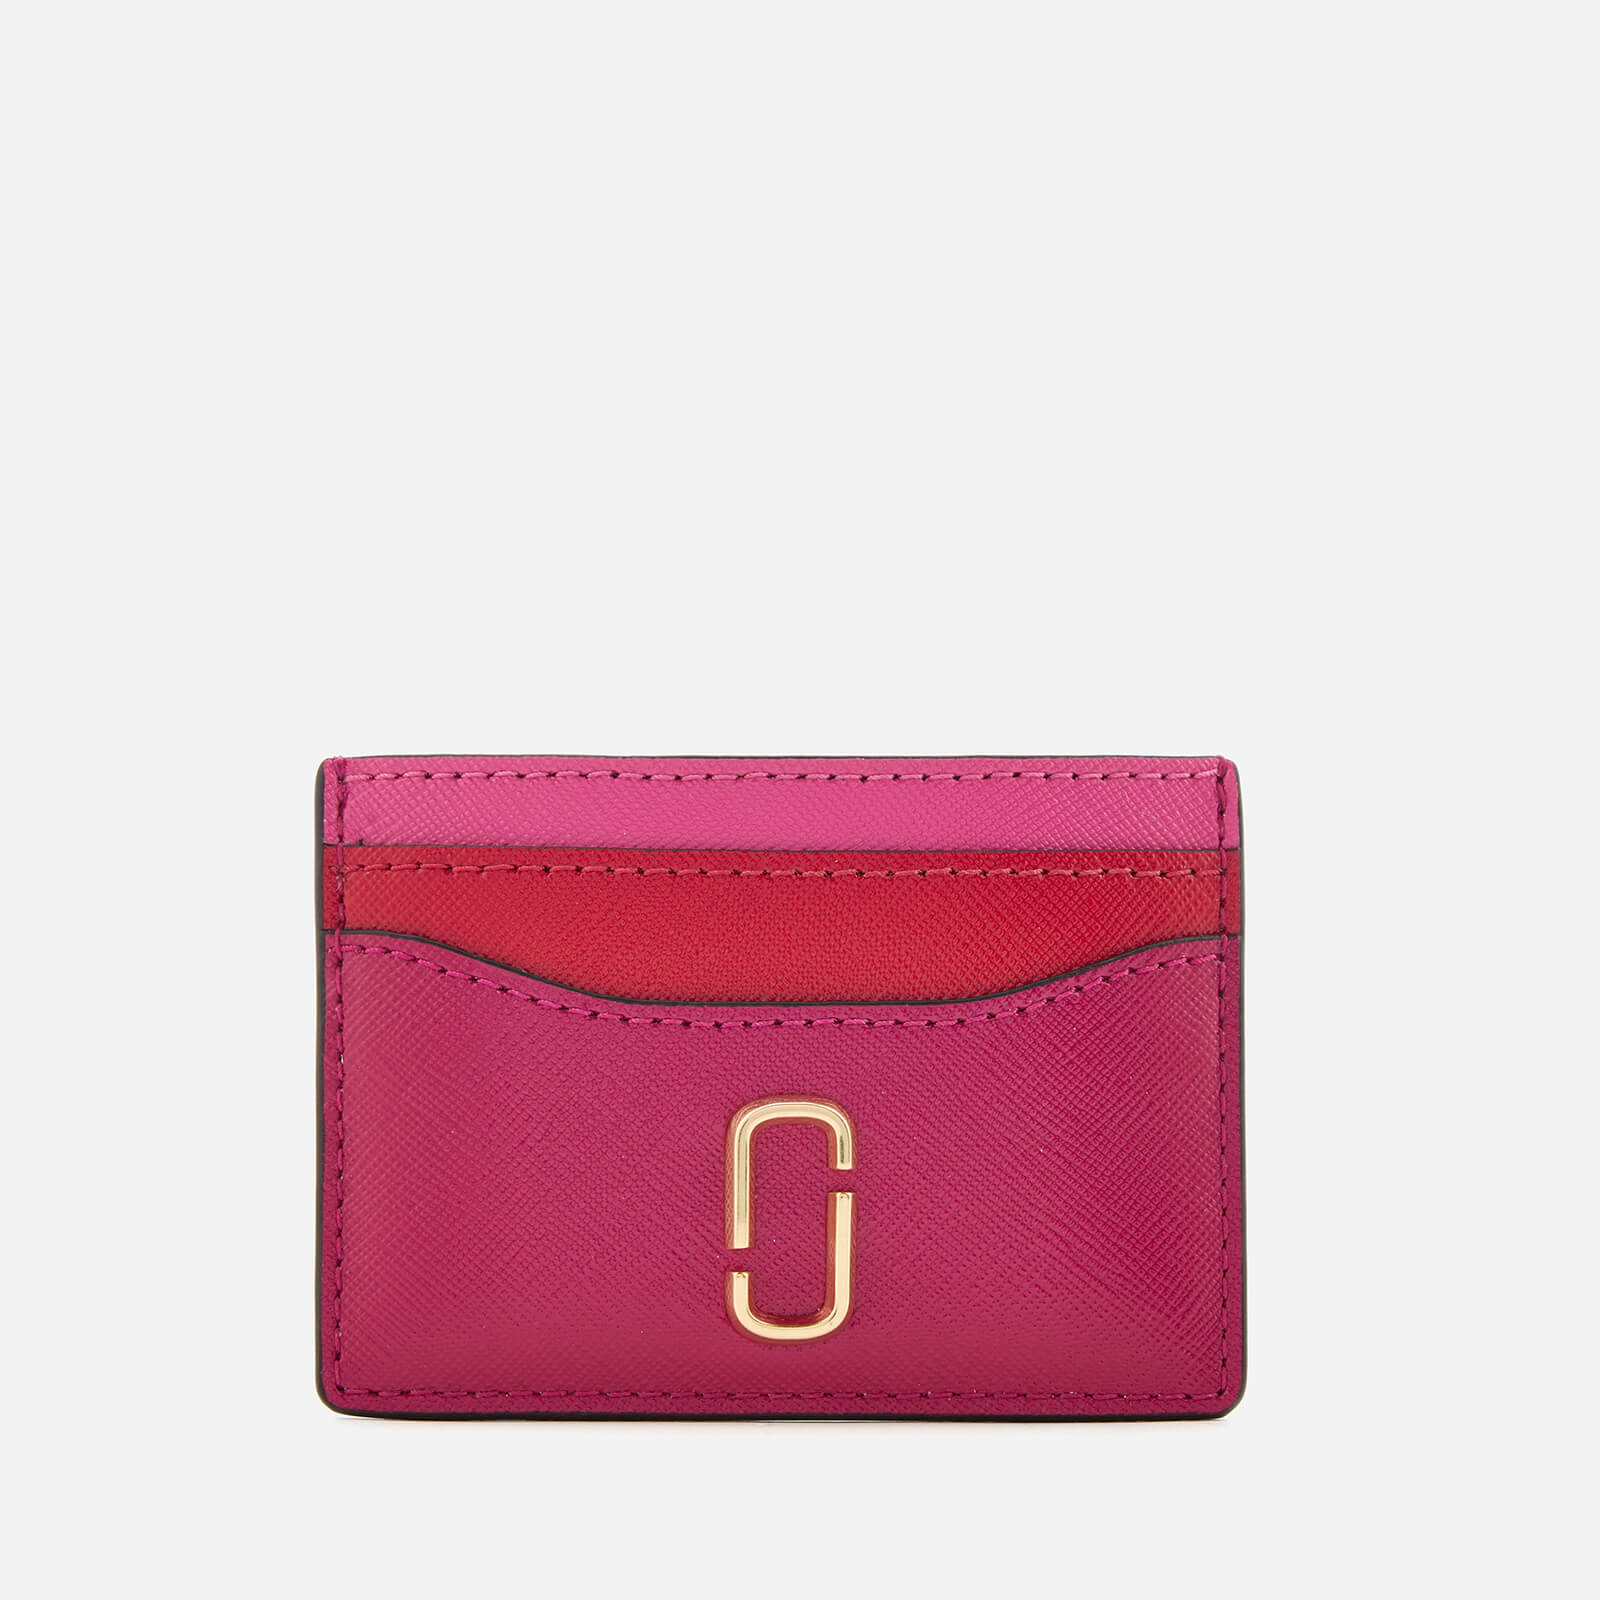 741808a12 Marc Jacobs Women's Card Case - Hibiscus Multi - Free UK Delivery over £50